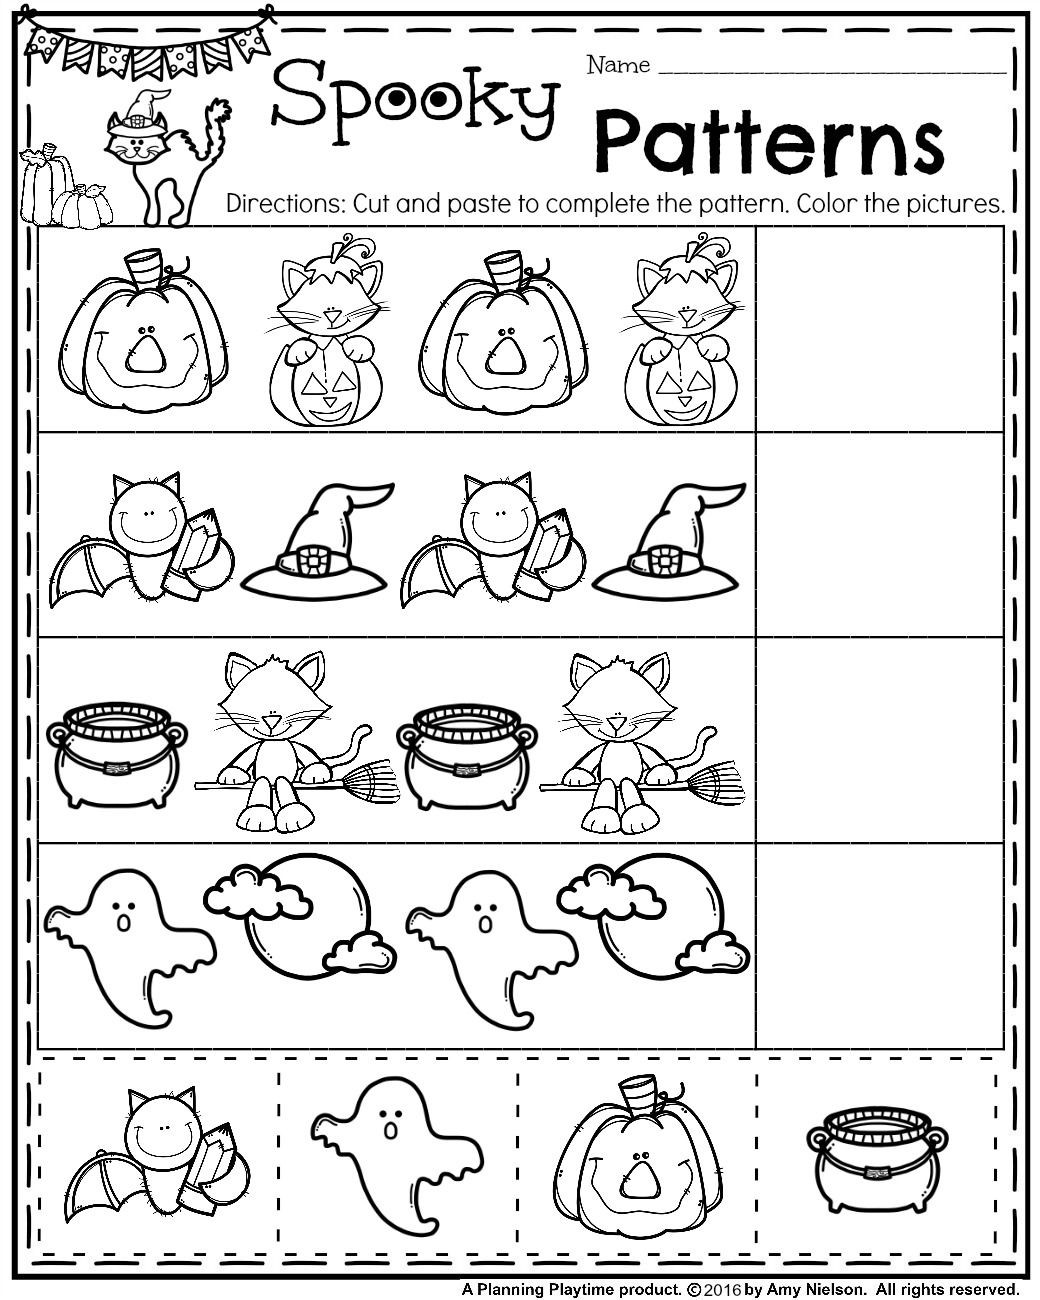 Free Kindergarten Halloween Worksheets Printable October Preschool Worksheets